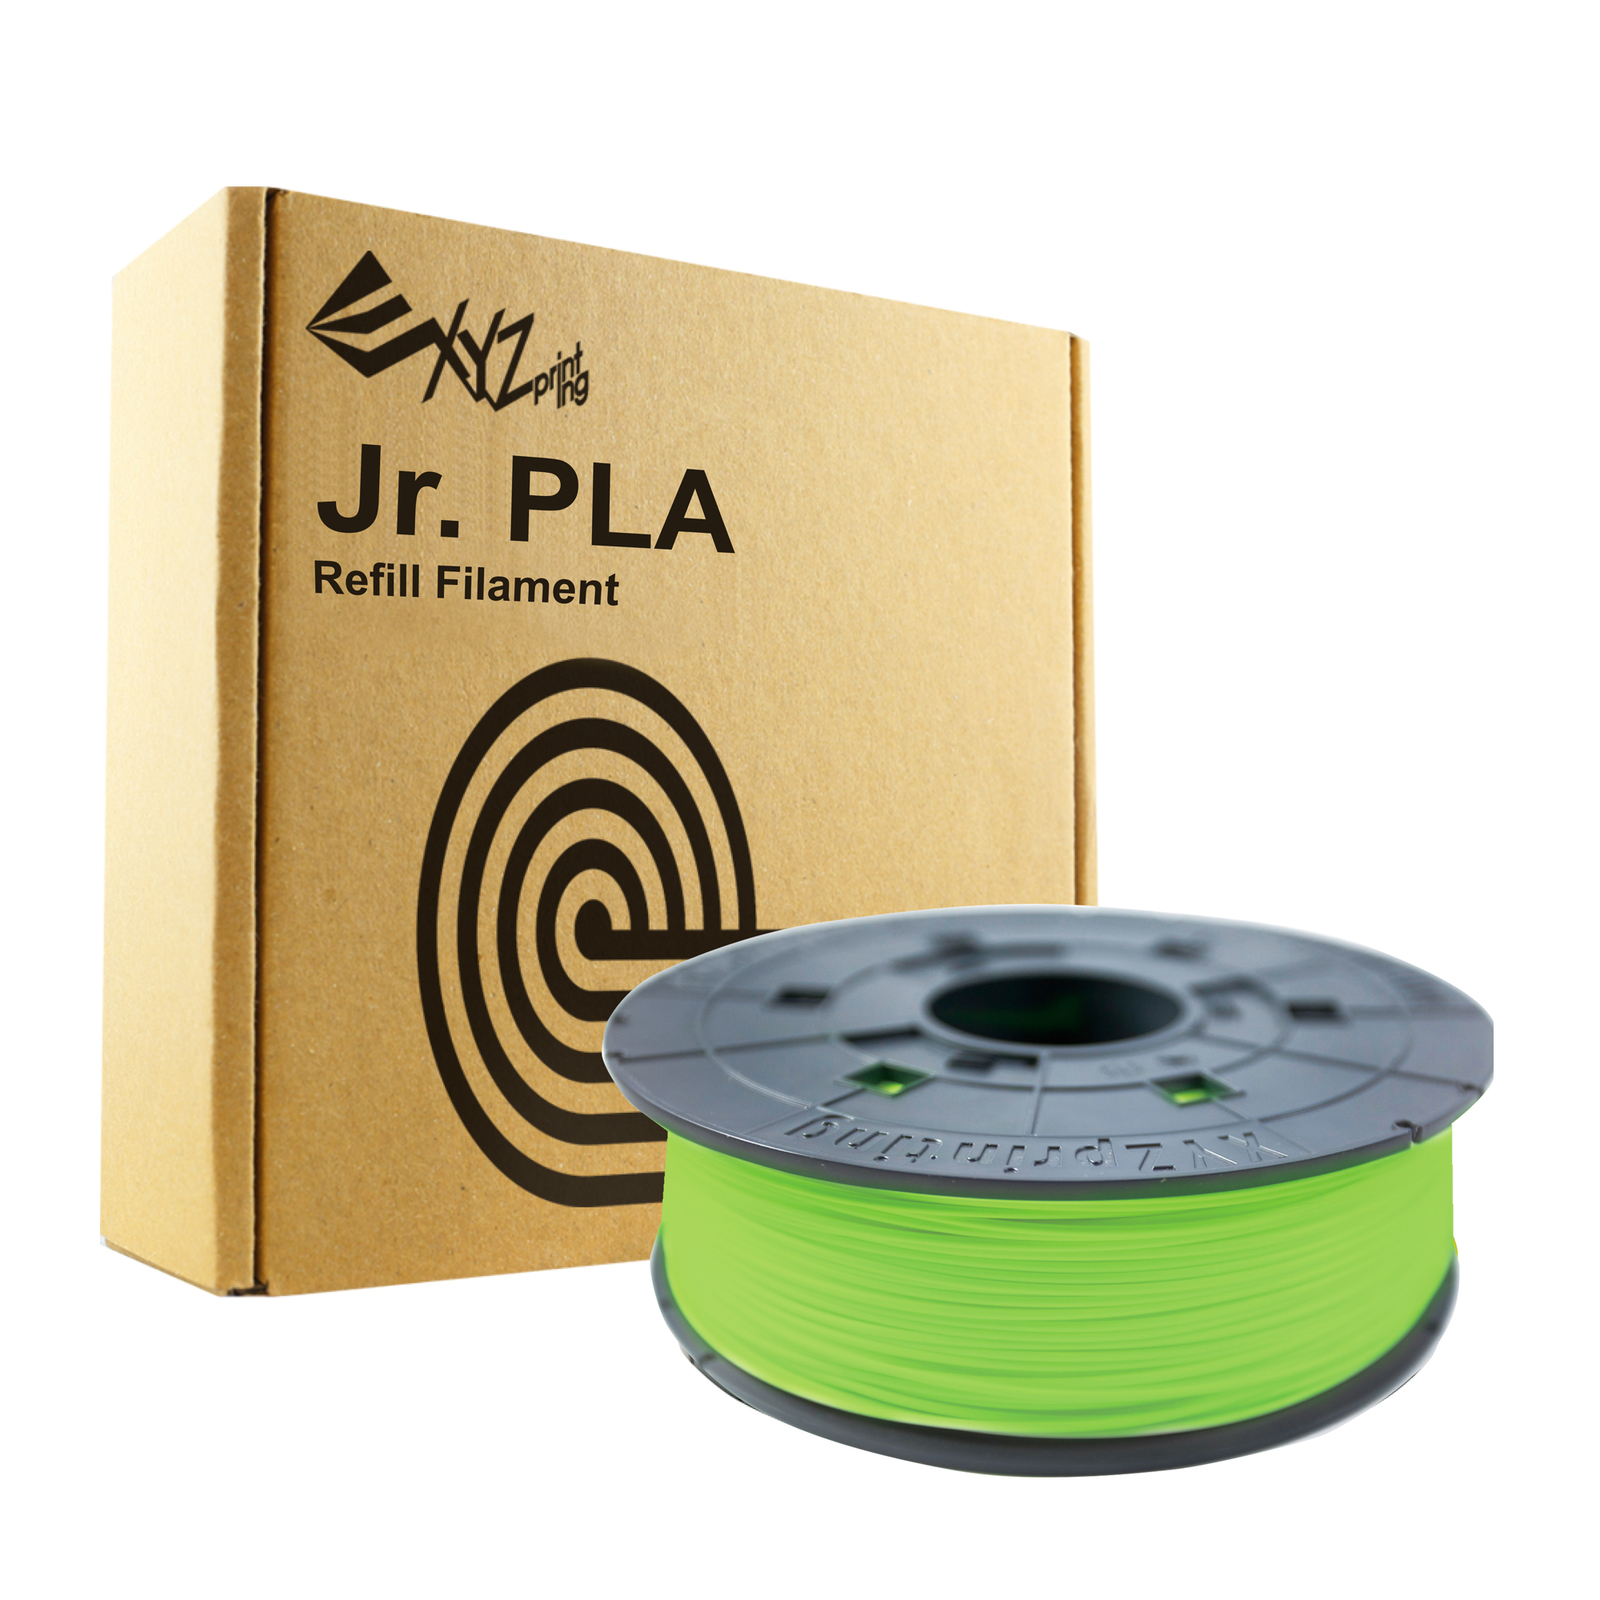 Da Vinci Filament For Mini Maker/Jr - PLA Refill Pack (Neon Green) image